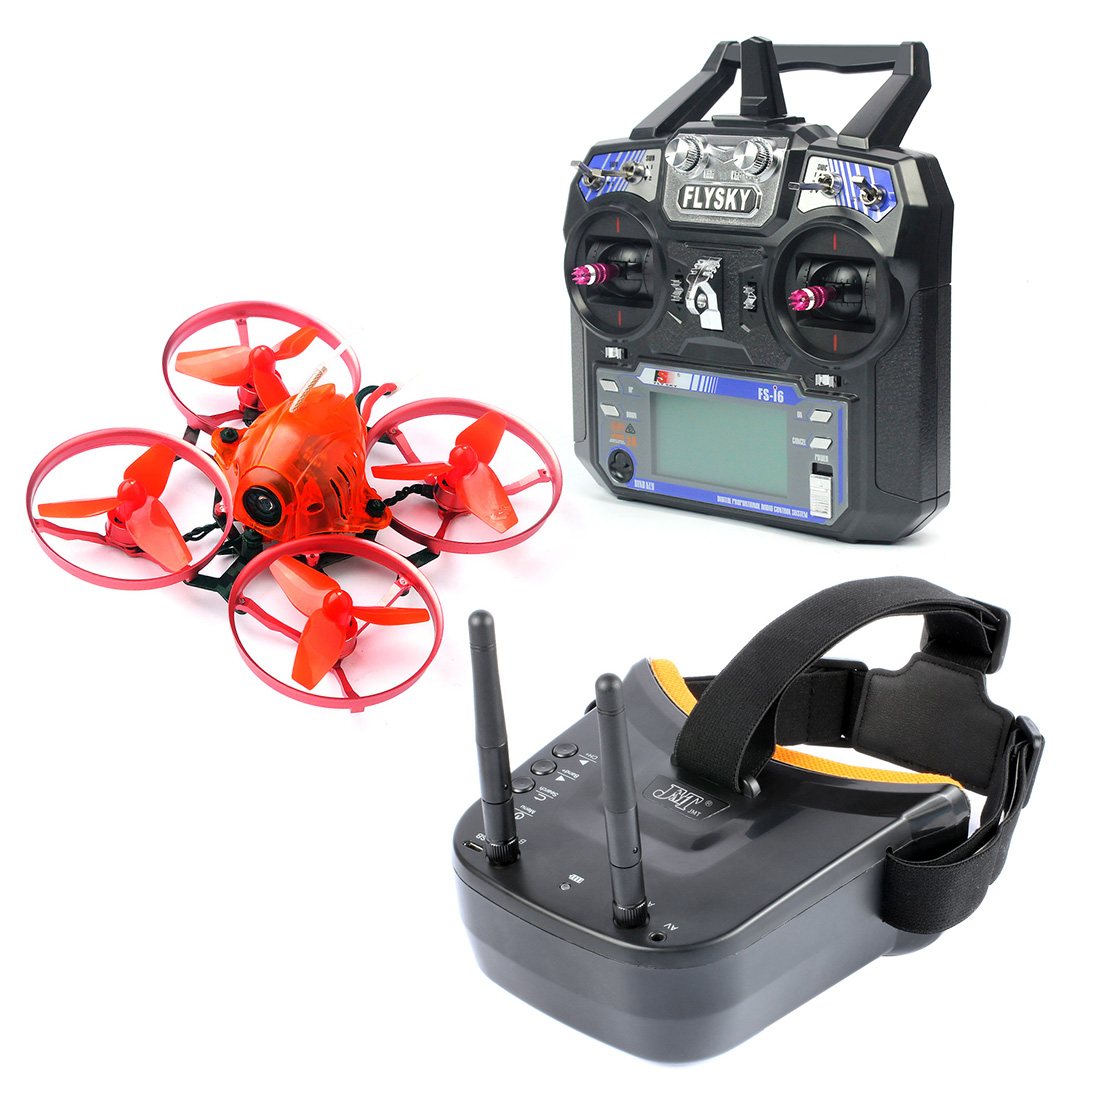 Snapper7 Brushless Micro 75mm 5.8G FPV Racer Drone 2.4G 6CH RC Helicopters RTF 700TVL Camera VTX & Double Antenna Mini Goggles snapper7 brushless micro 75mm 5 8g fpv racer drone 2 4g 6ch rc quadcopter rtf 700tvl camera vtx